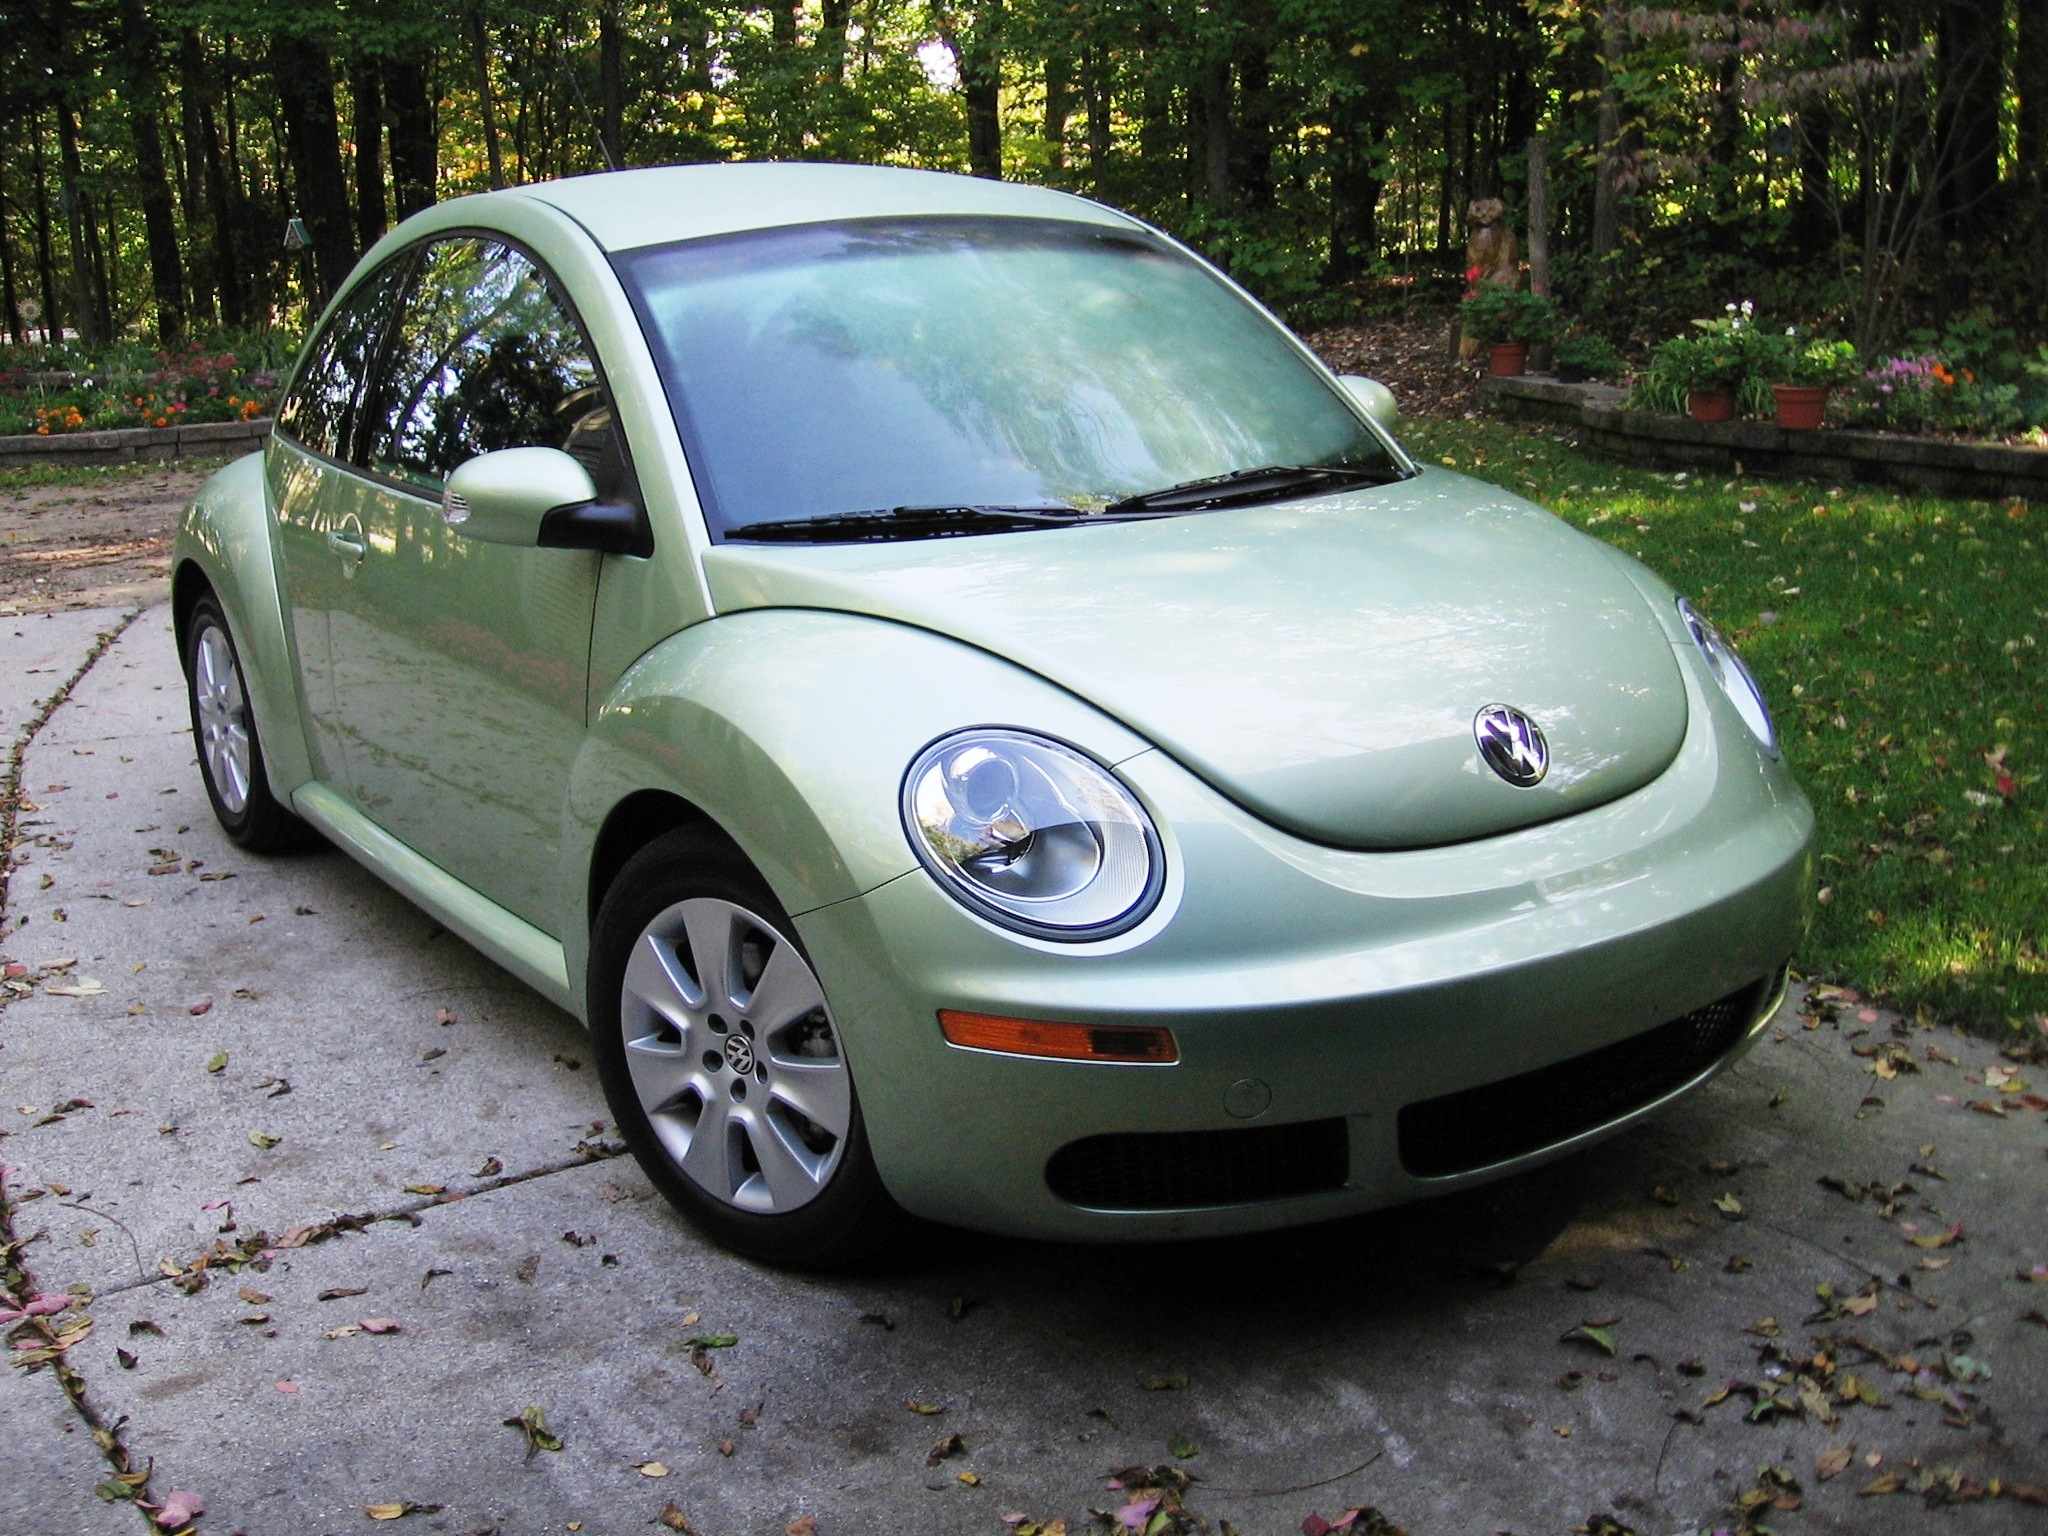 VOLKSWAGEN NEW BEETLE green